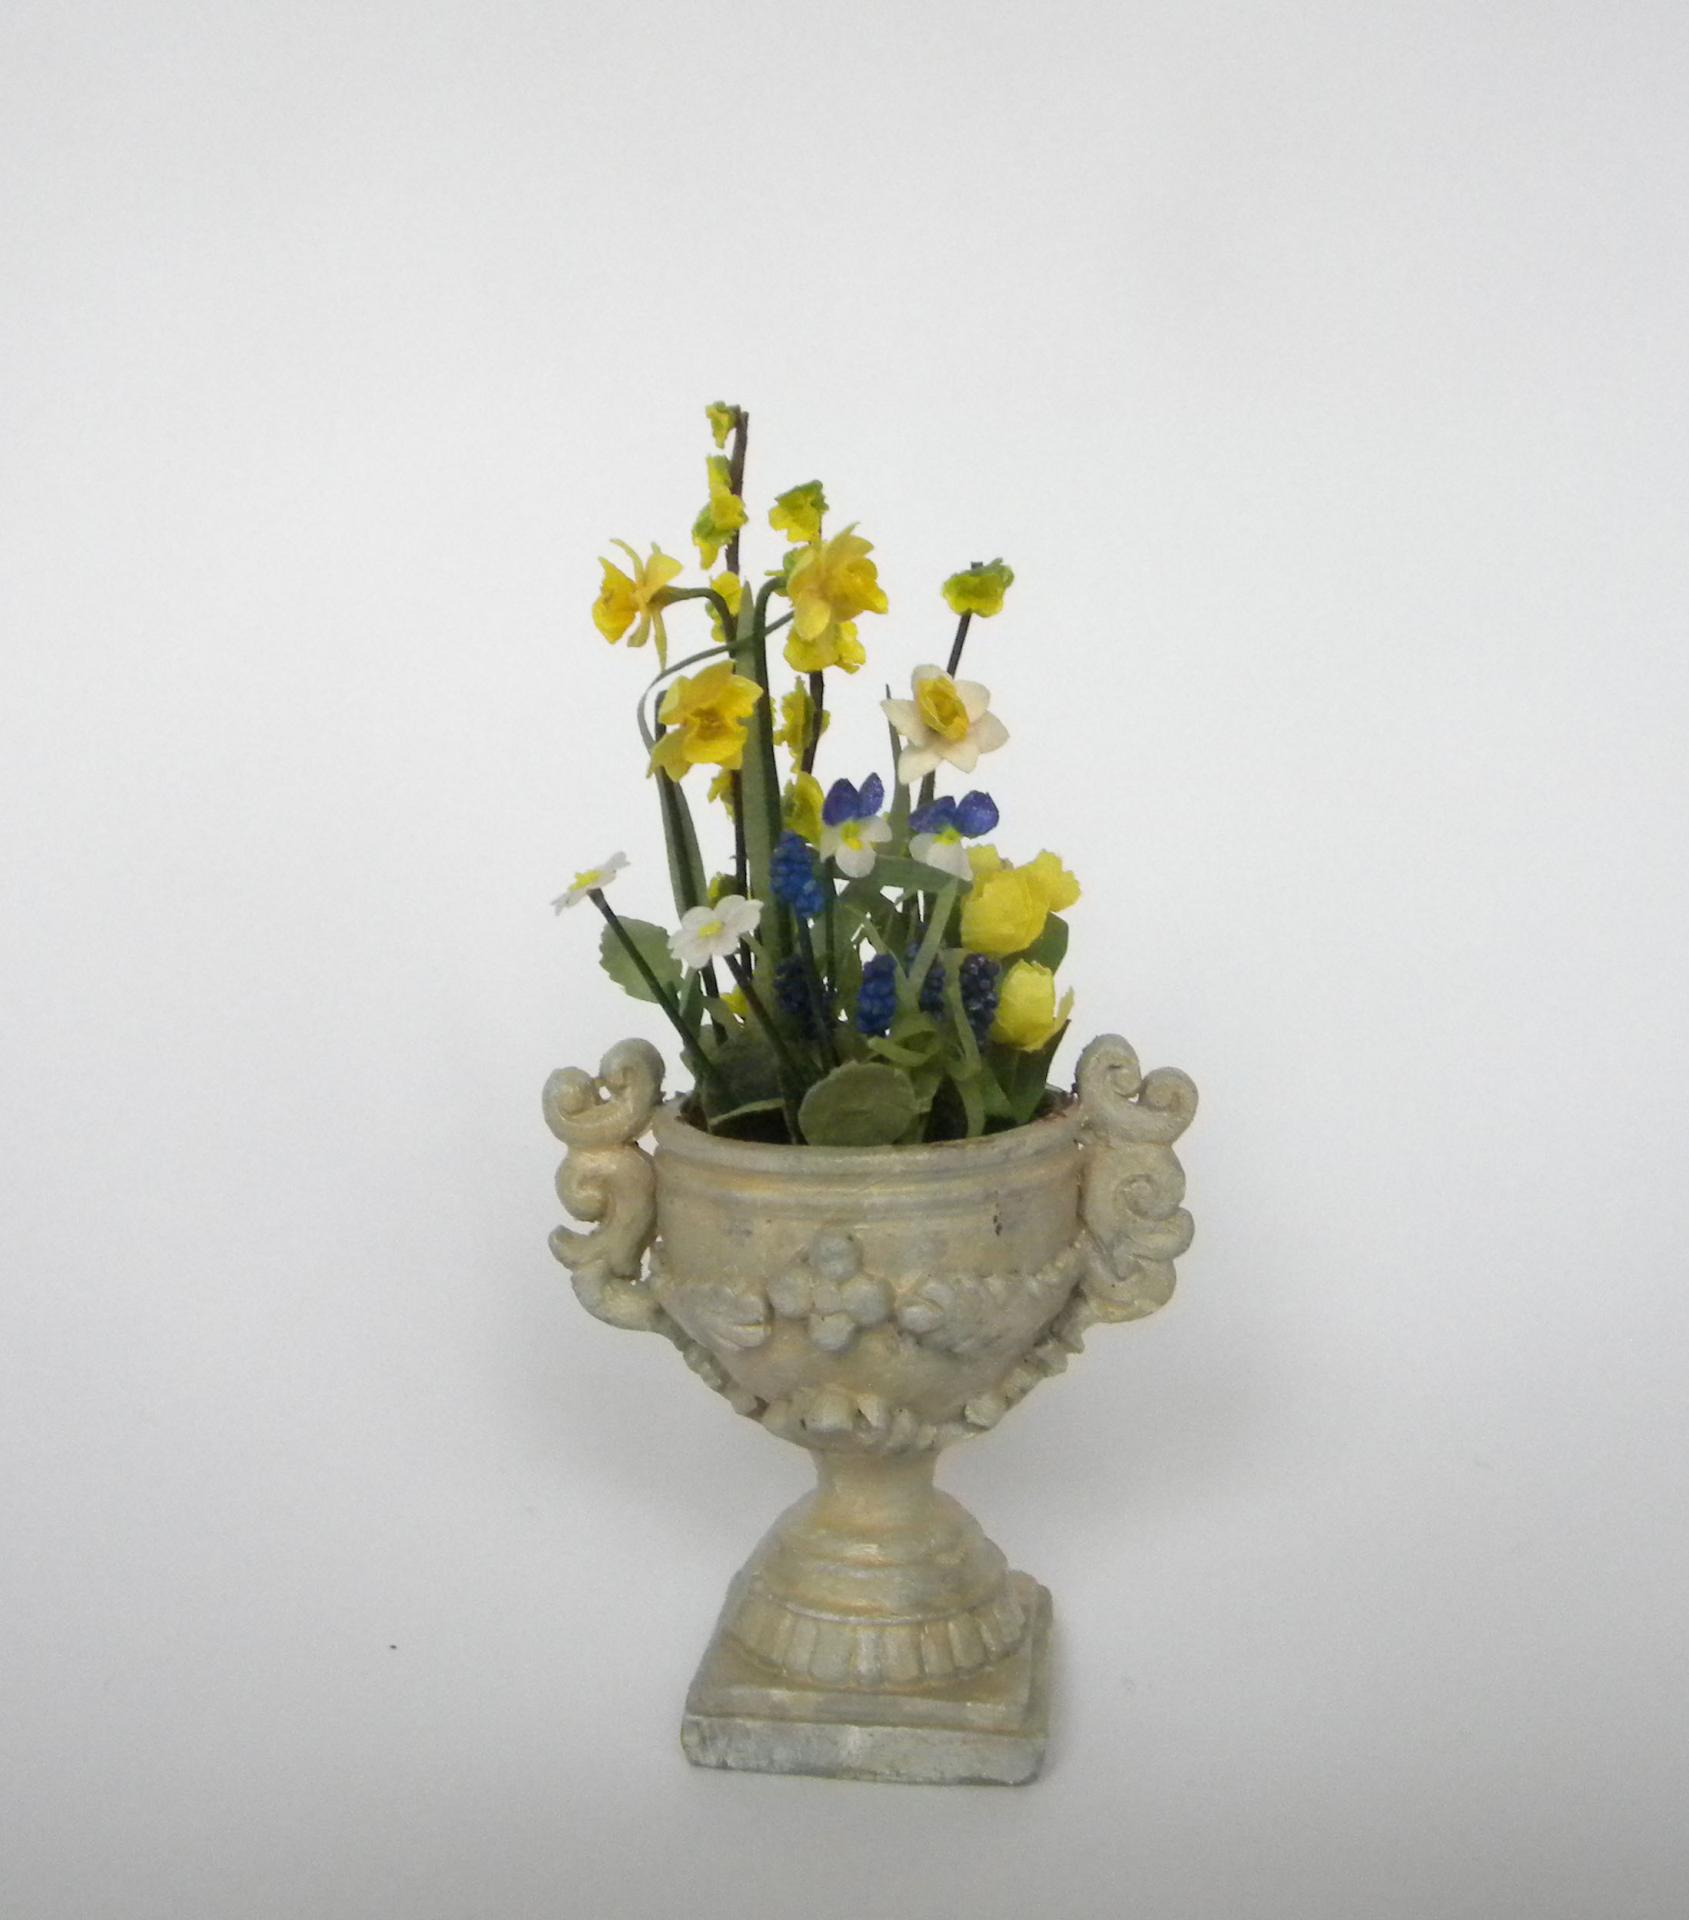 Coupe jonquilles